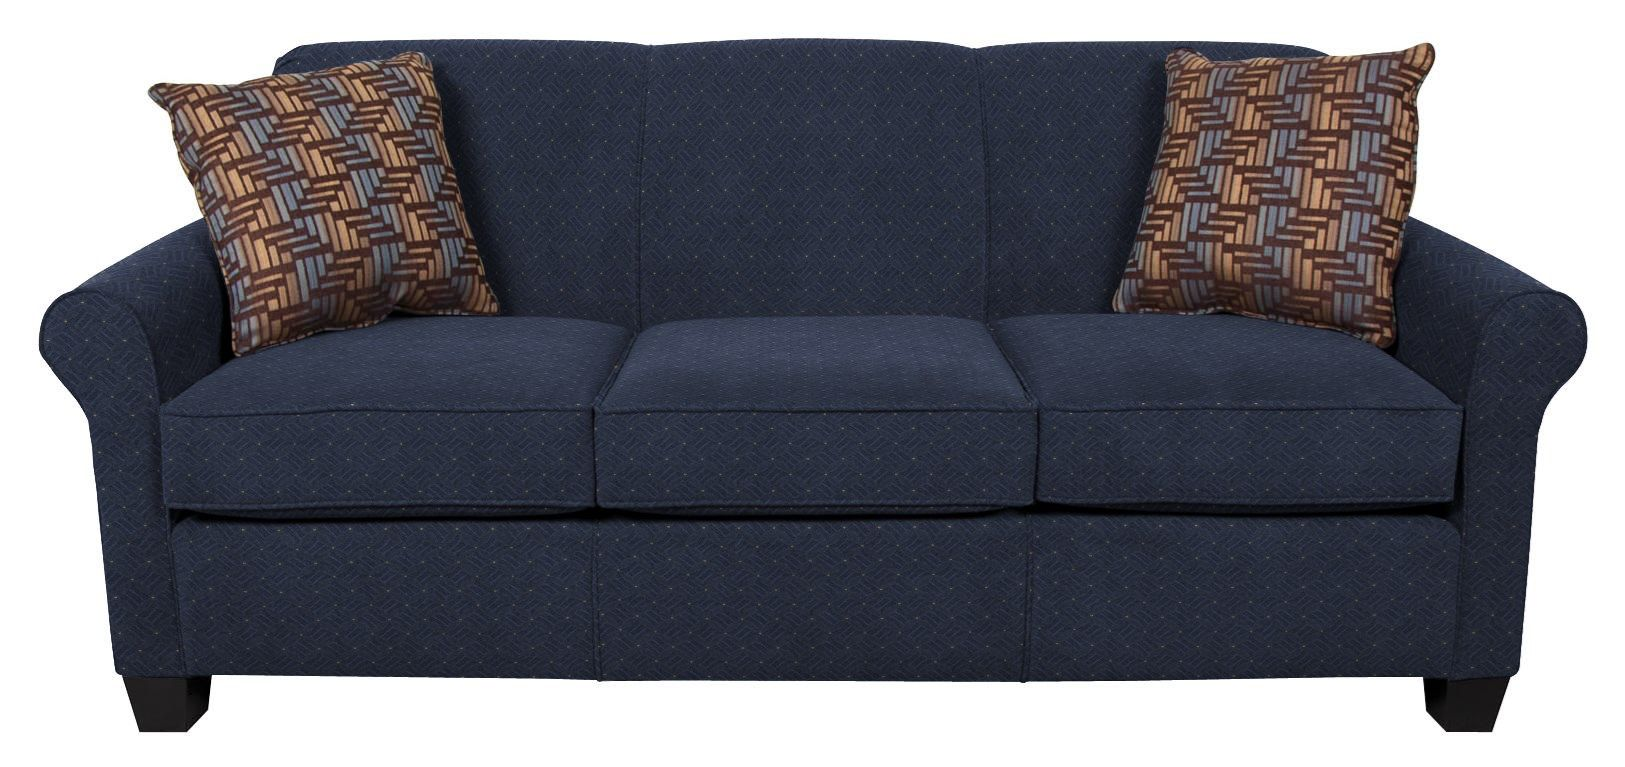 Phenomenal Angie Queen Sleeper Sofa With Accent Cushions By England Pabps2019 Chair Design Images Pabps2019Com